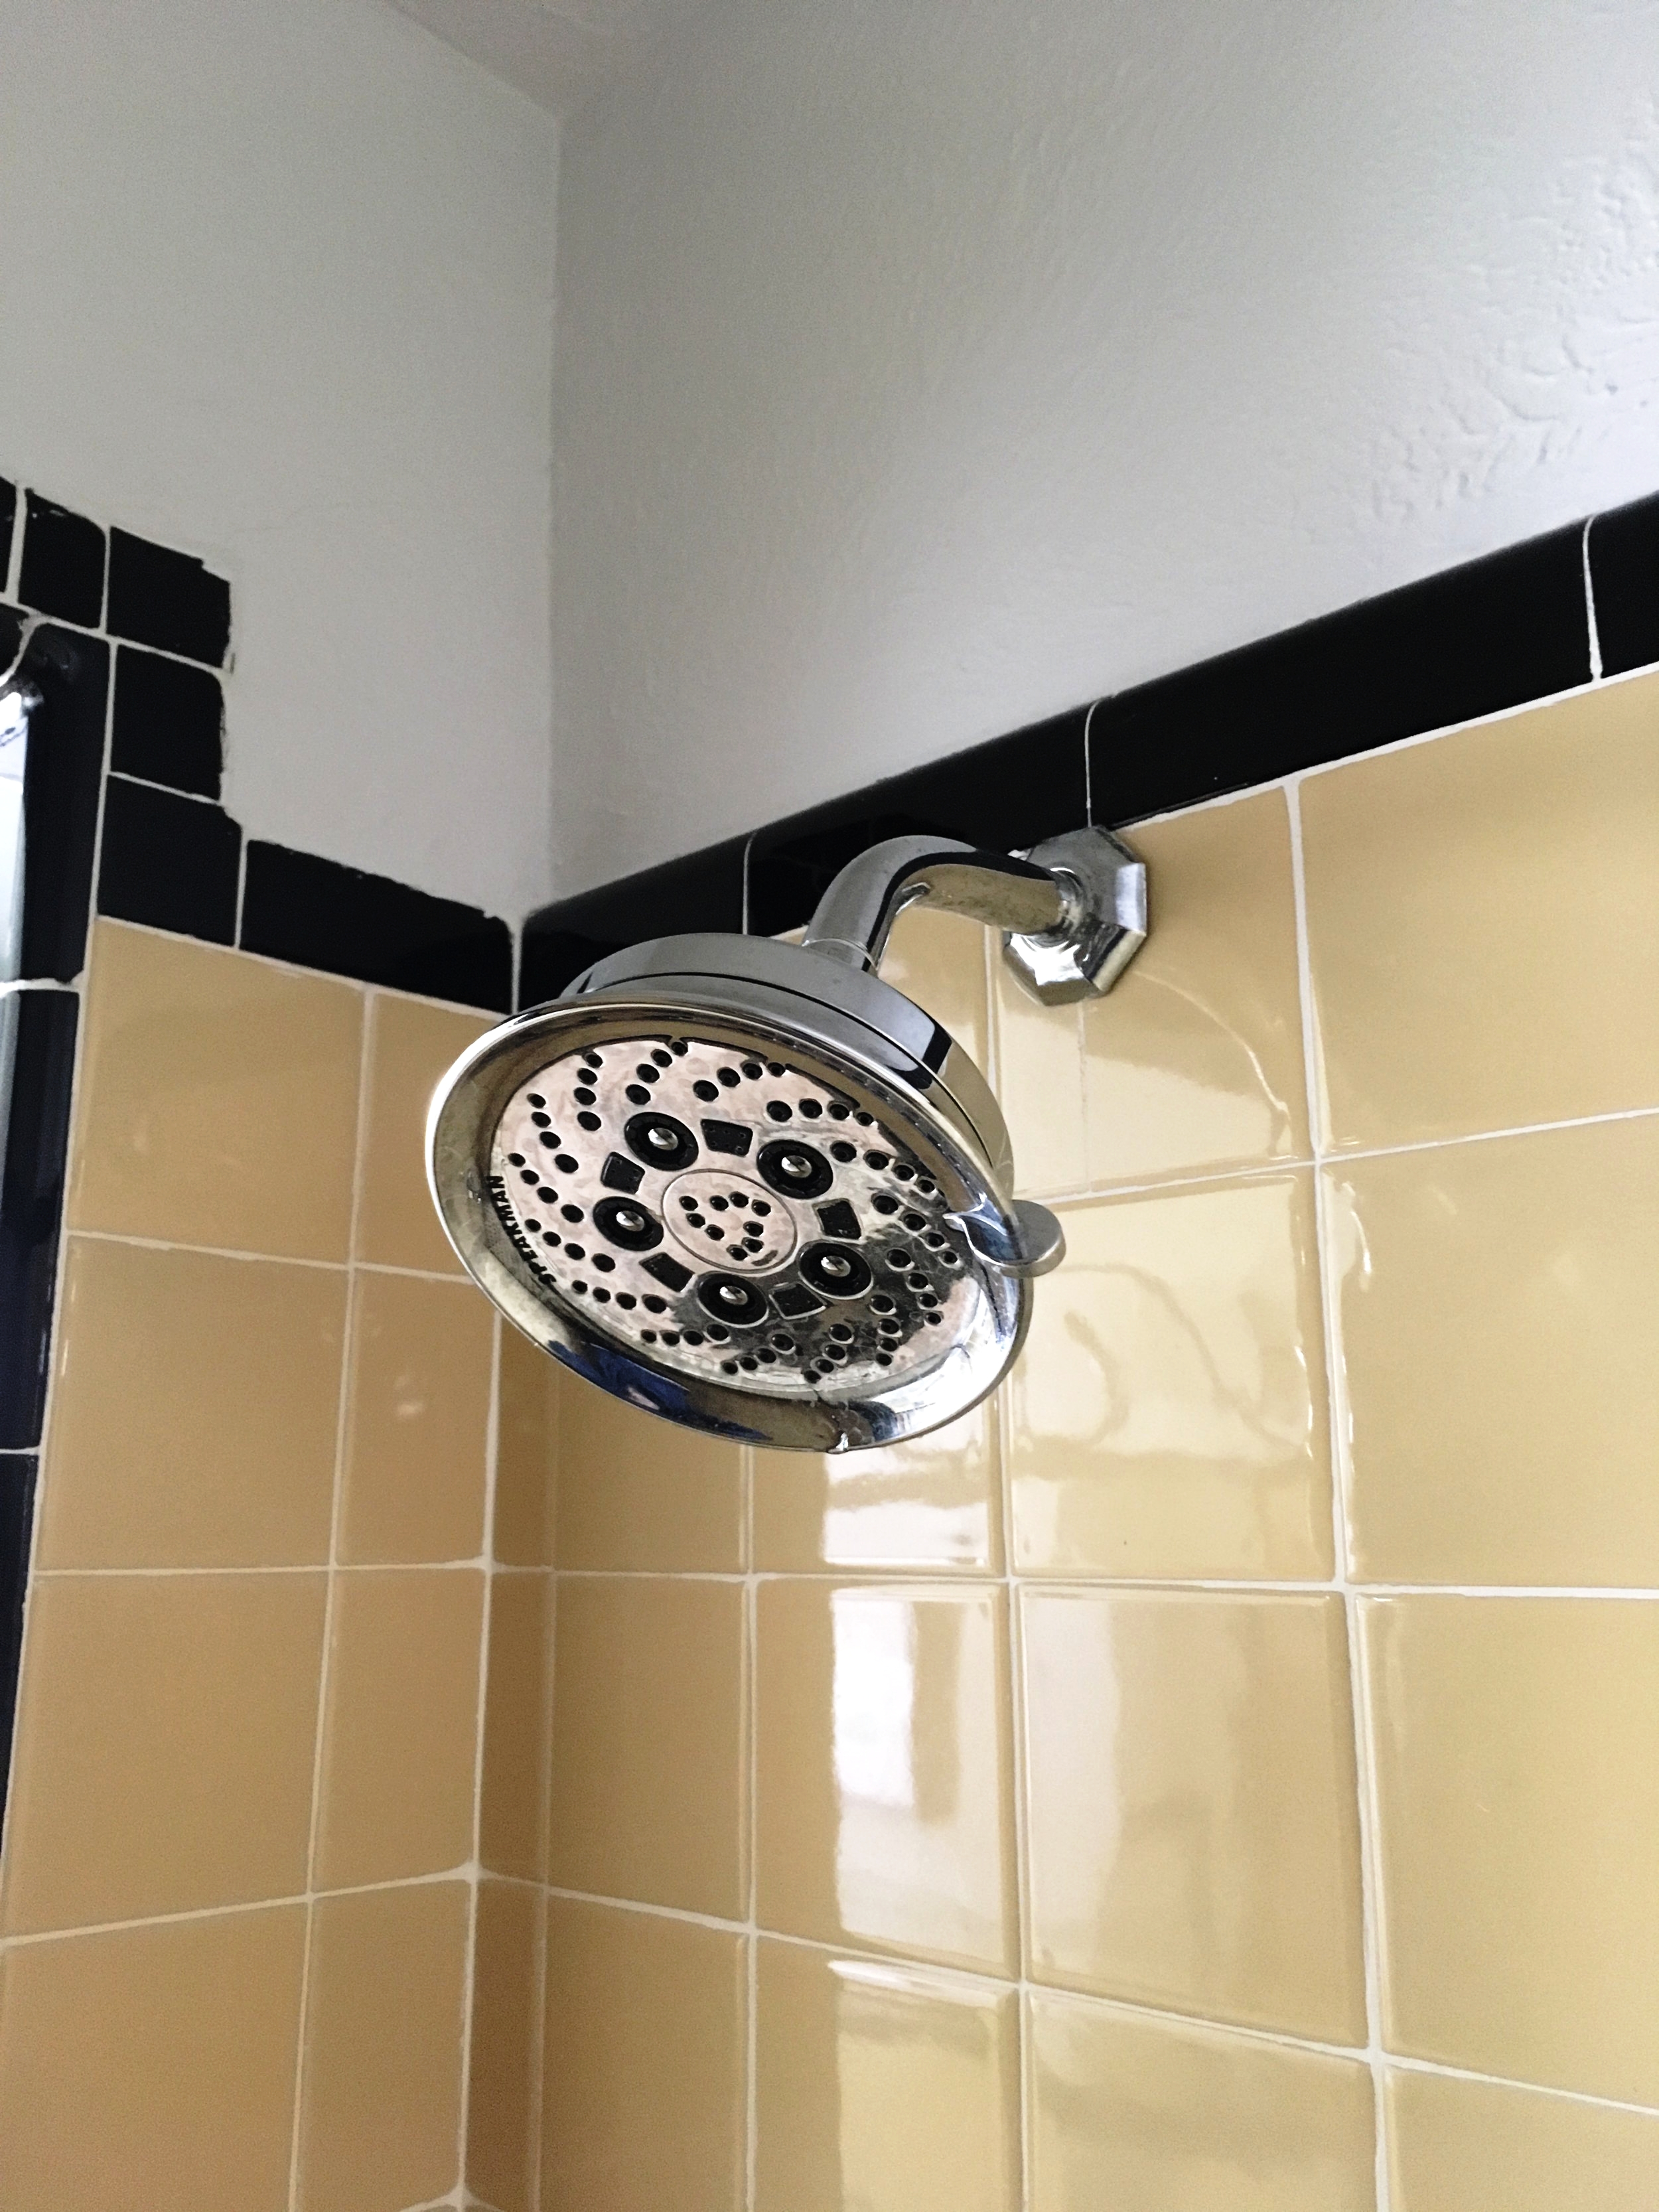 water saving never felt so good with our Speakman Shower heads